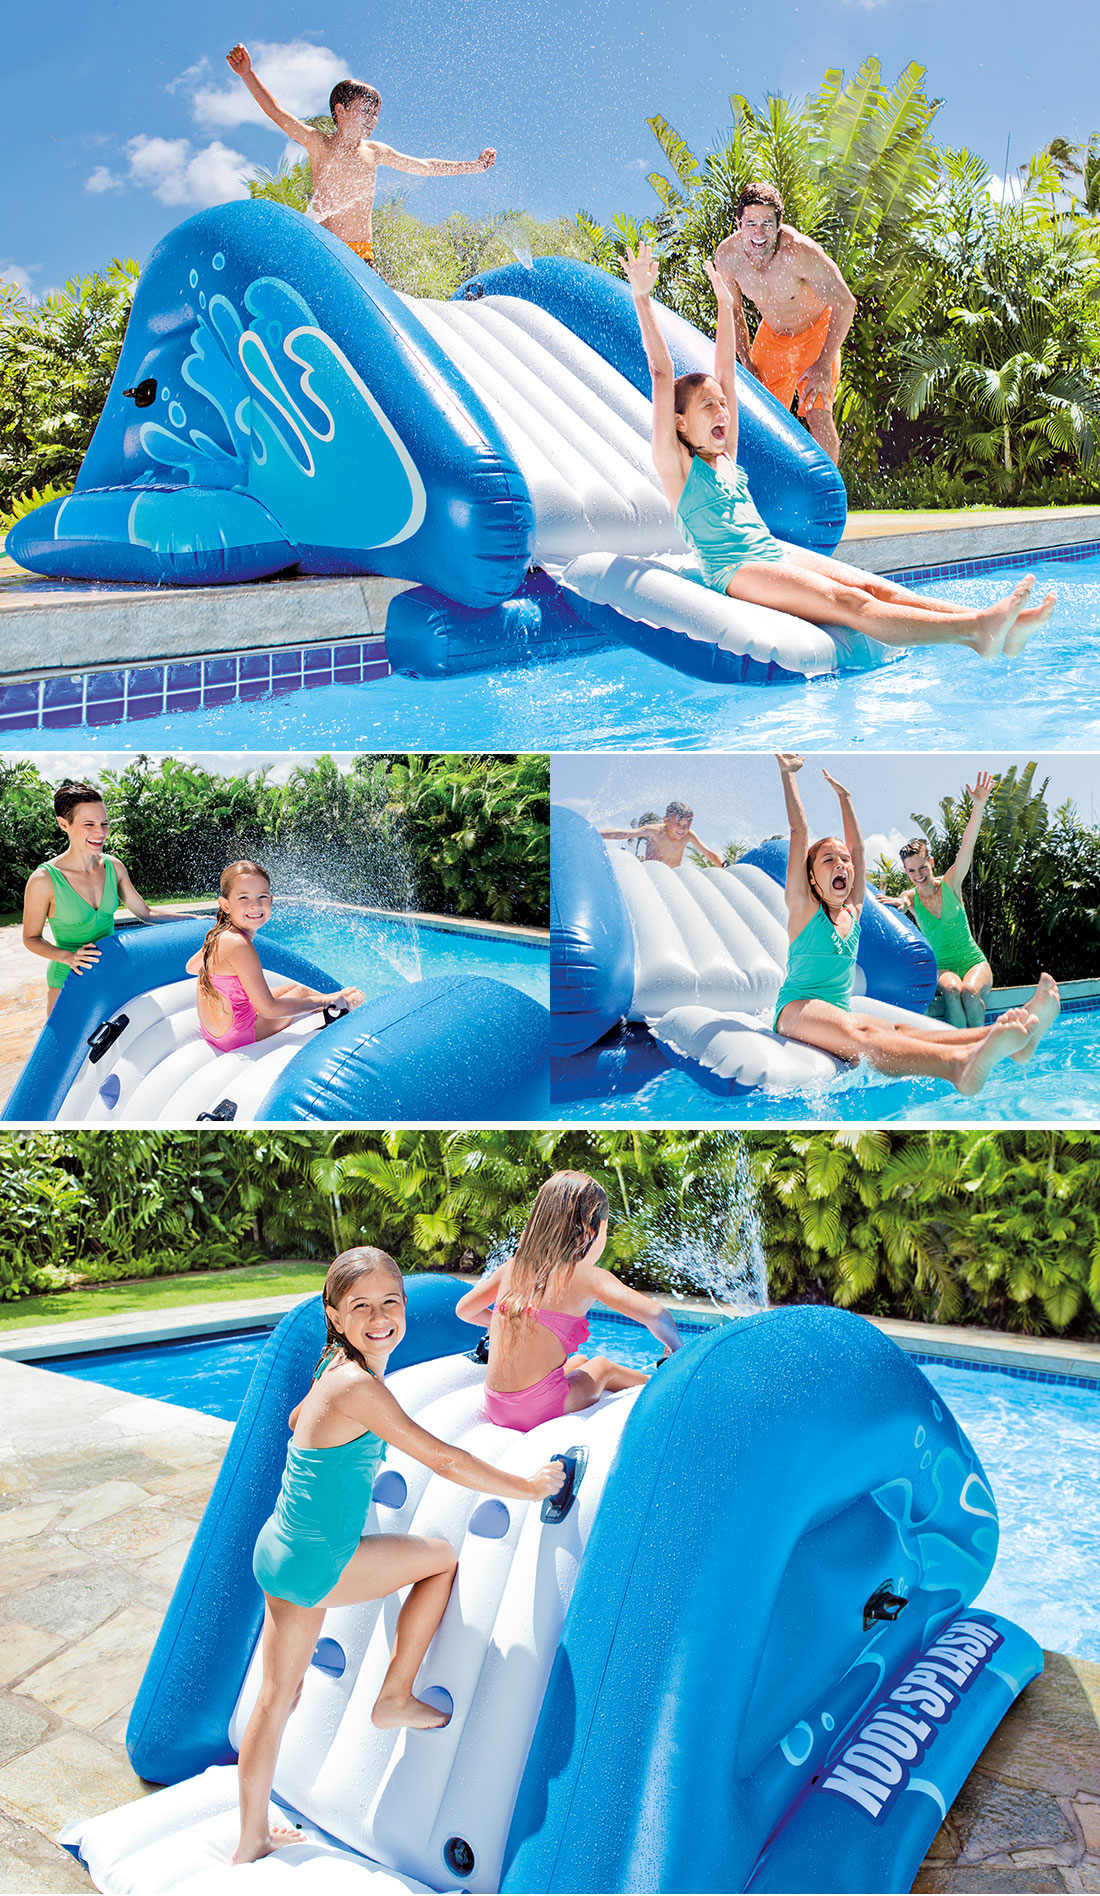 Toboggan gonflable pour piscine enterr e for Toboggan gonflable piscine